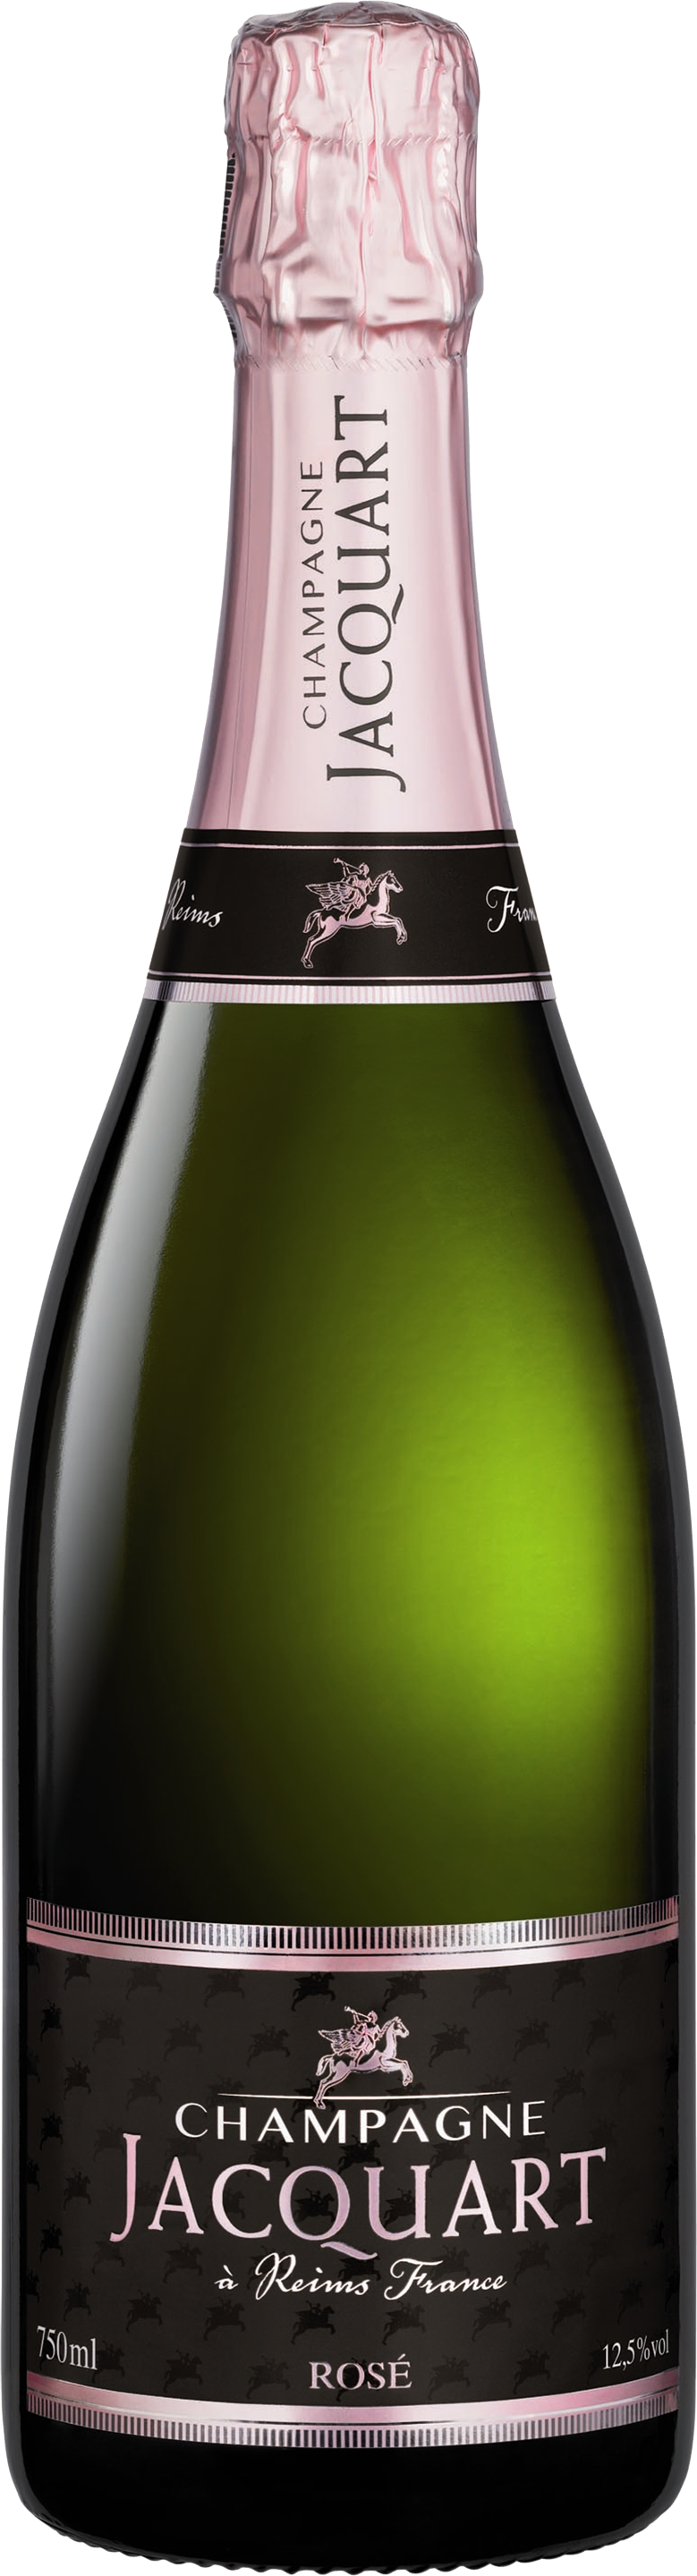 Champagne images glass. Bottle png